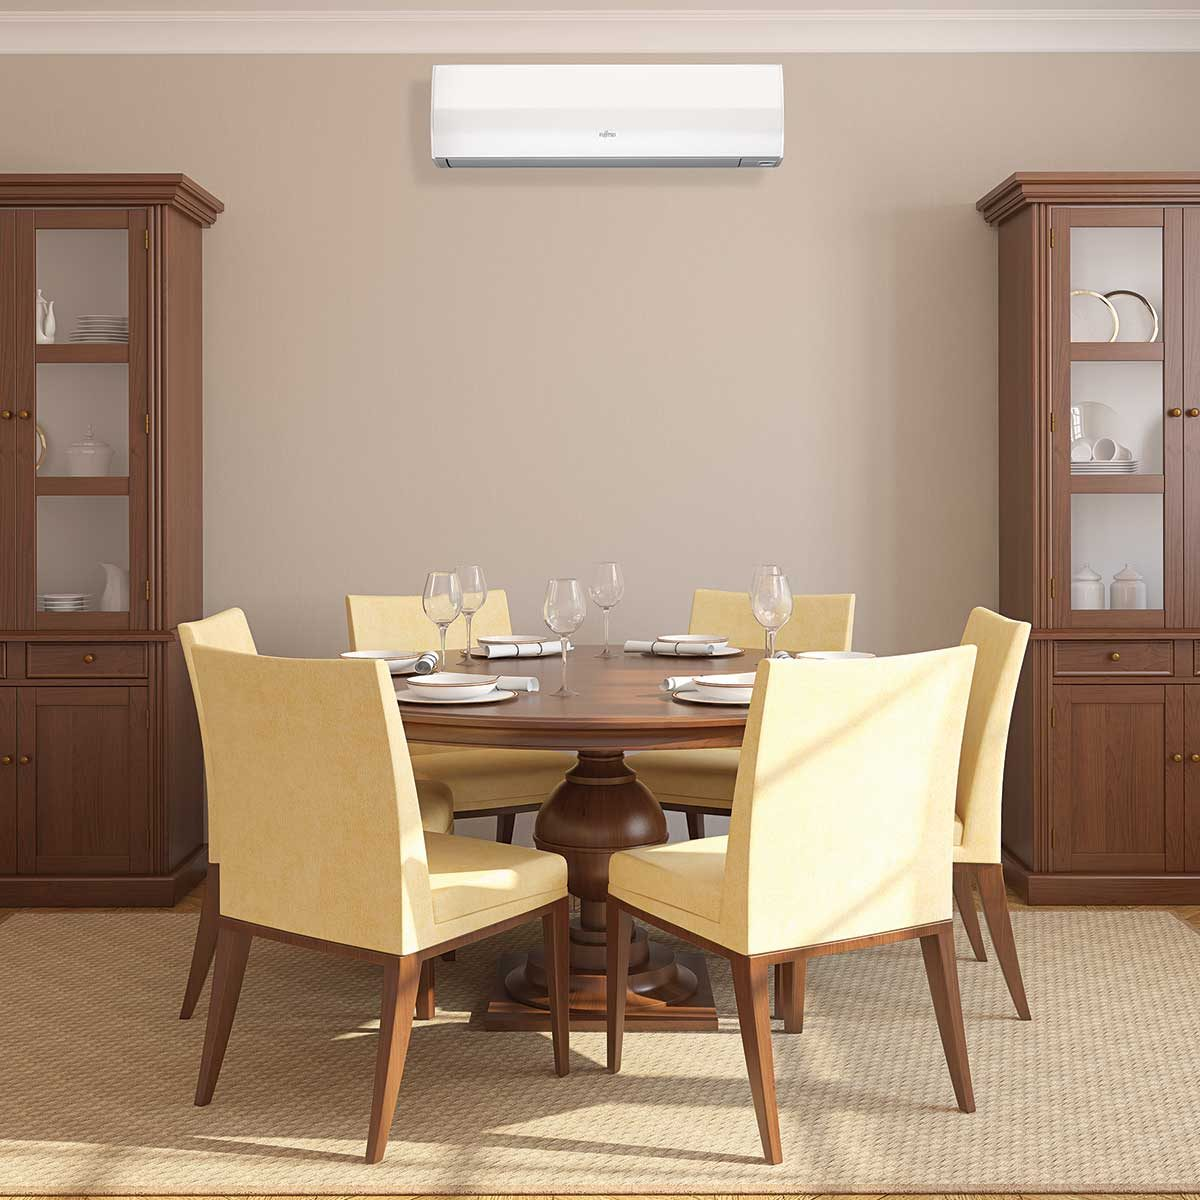 Fujitsu-Wall-Mcunt-Traditional-Dining-Room